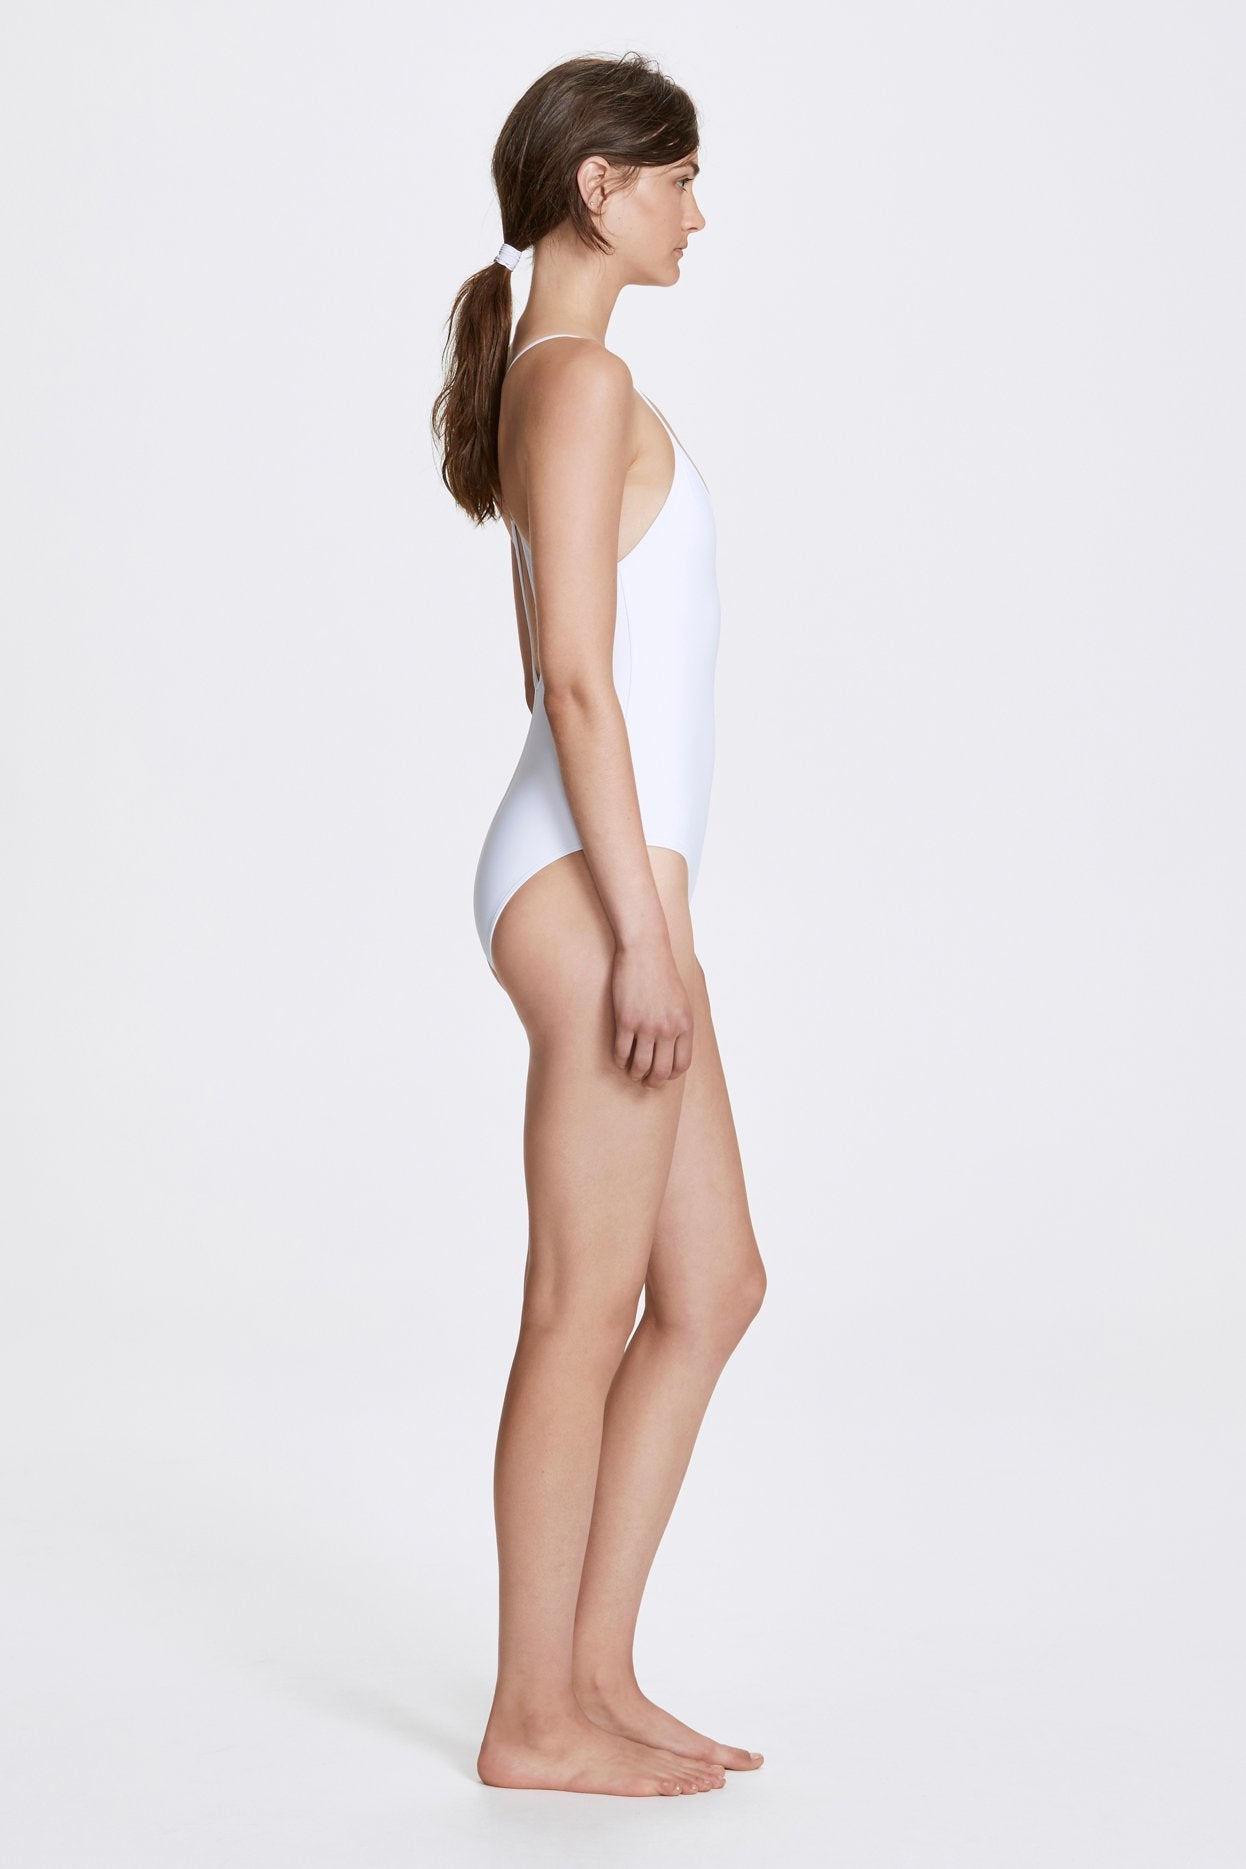 Her Line Dylan Swimwear One Piece Milk White Side